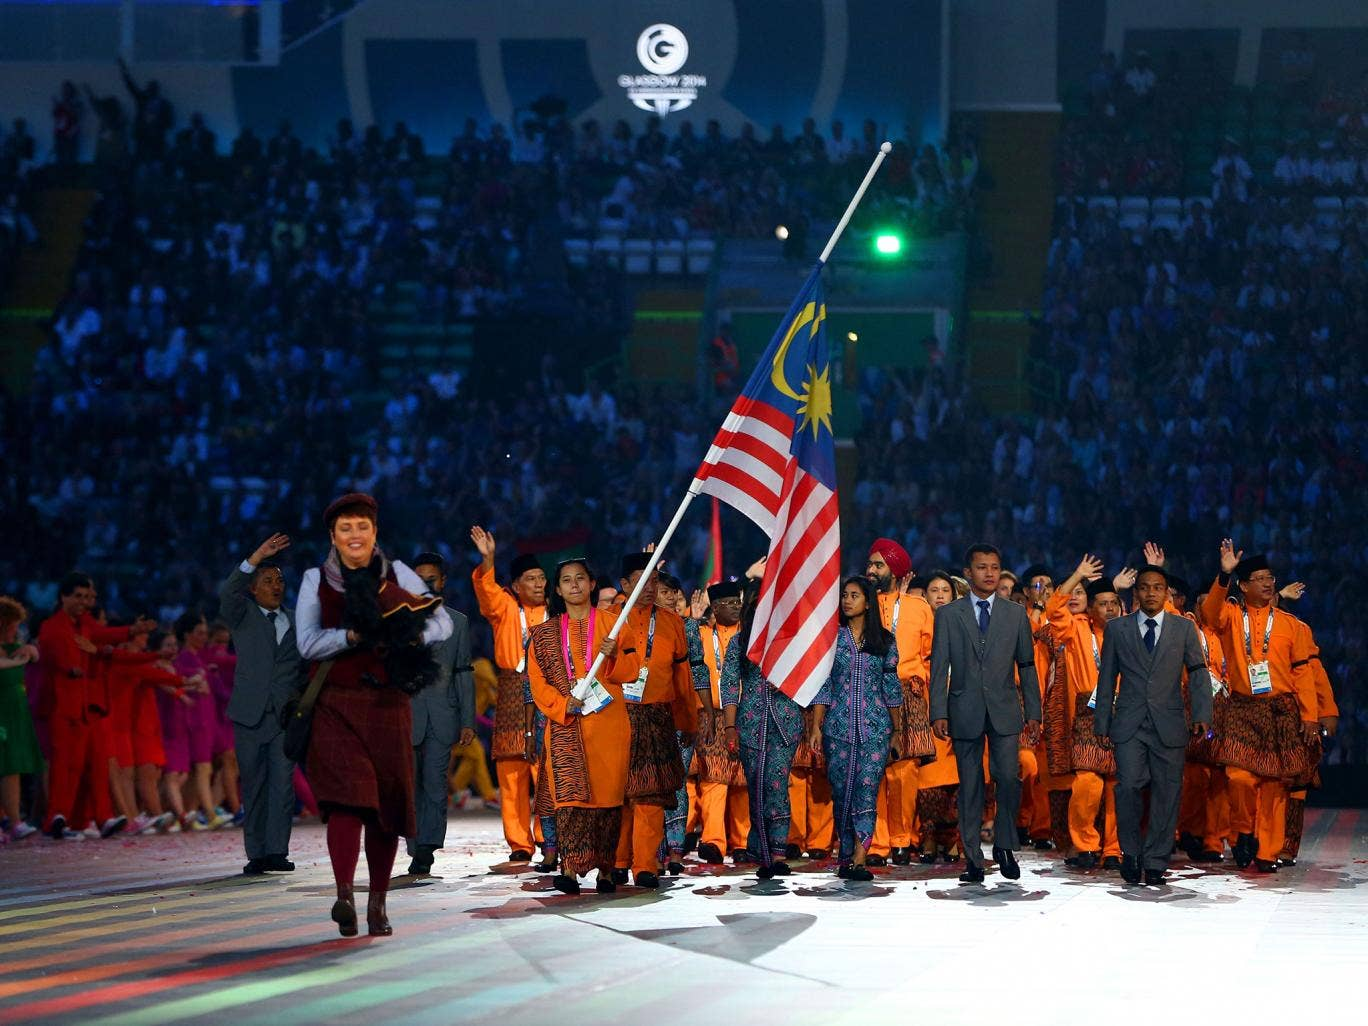 Flag bearer and Cyclist Fatehah Mustapa of Malaysia flies the flag at half mast during the Opening Ceremony for the Glasgow 2014 Commonwealth Games